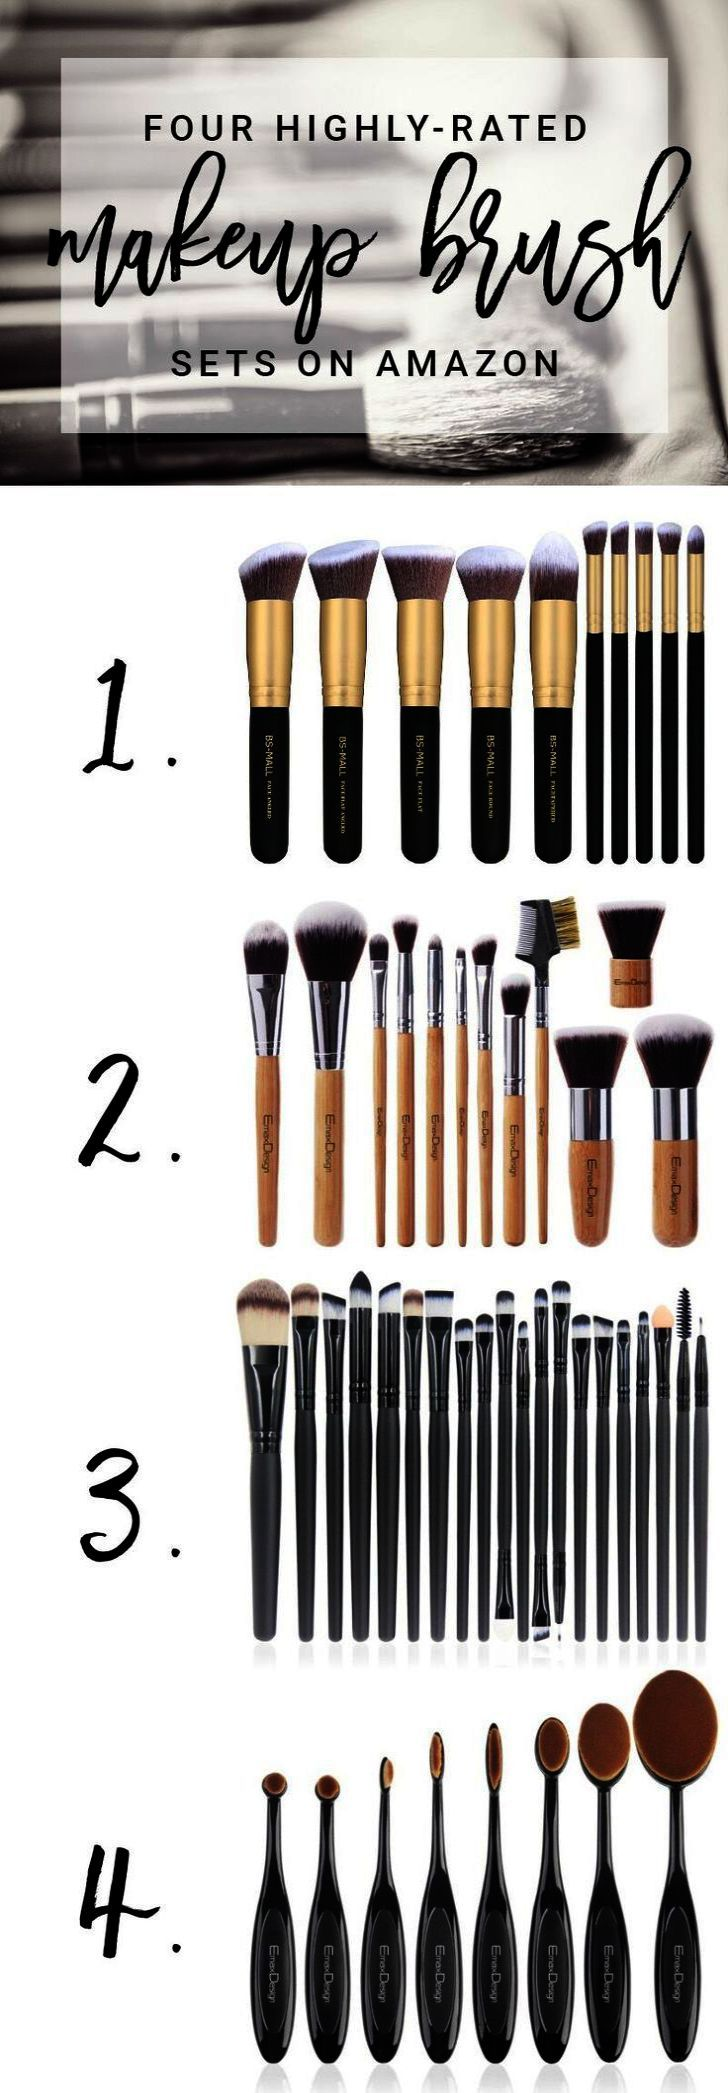 Kiss Looks So Natural Lashes Shy (6 Pack Makeup brush